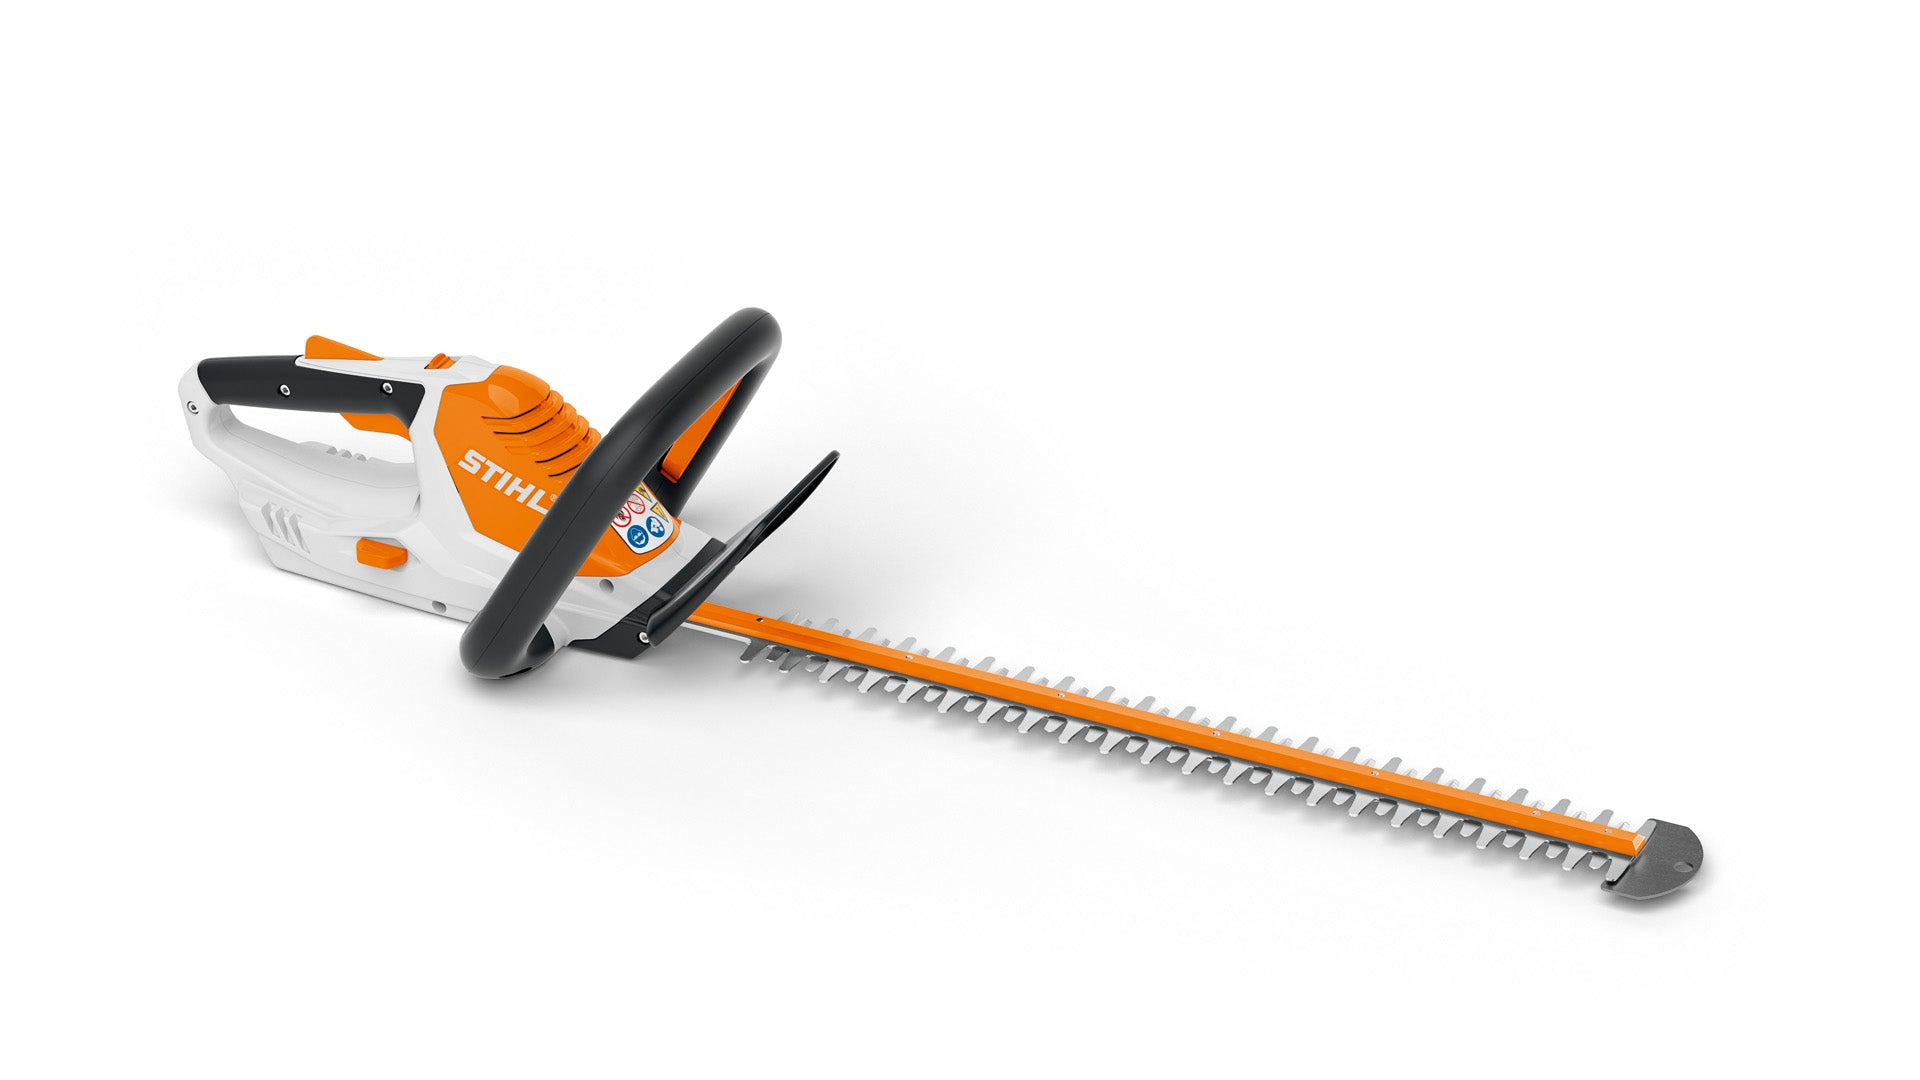 Stihl HSA 45 Light Weight Battery Powered Hedge Trimmer